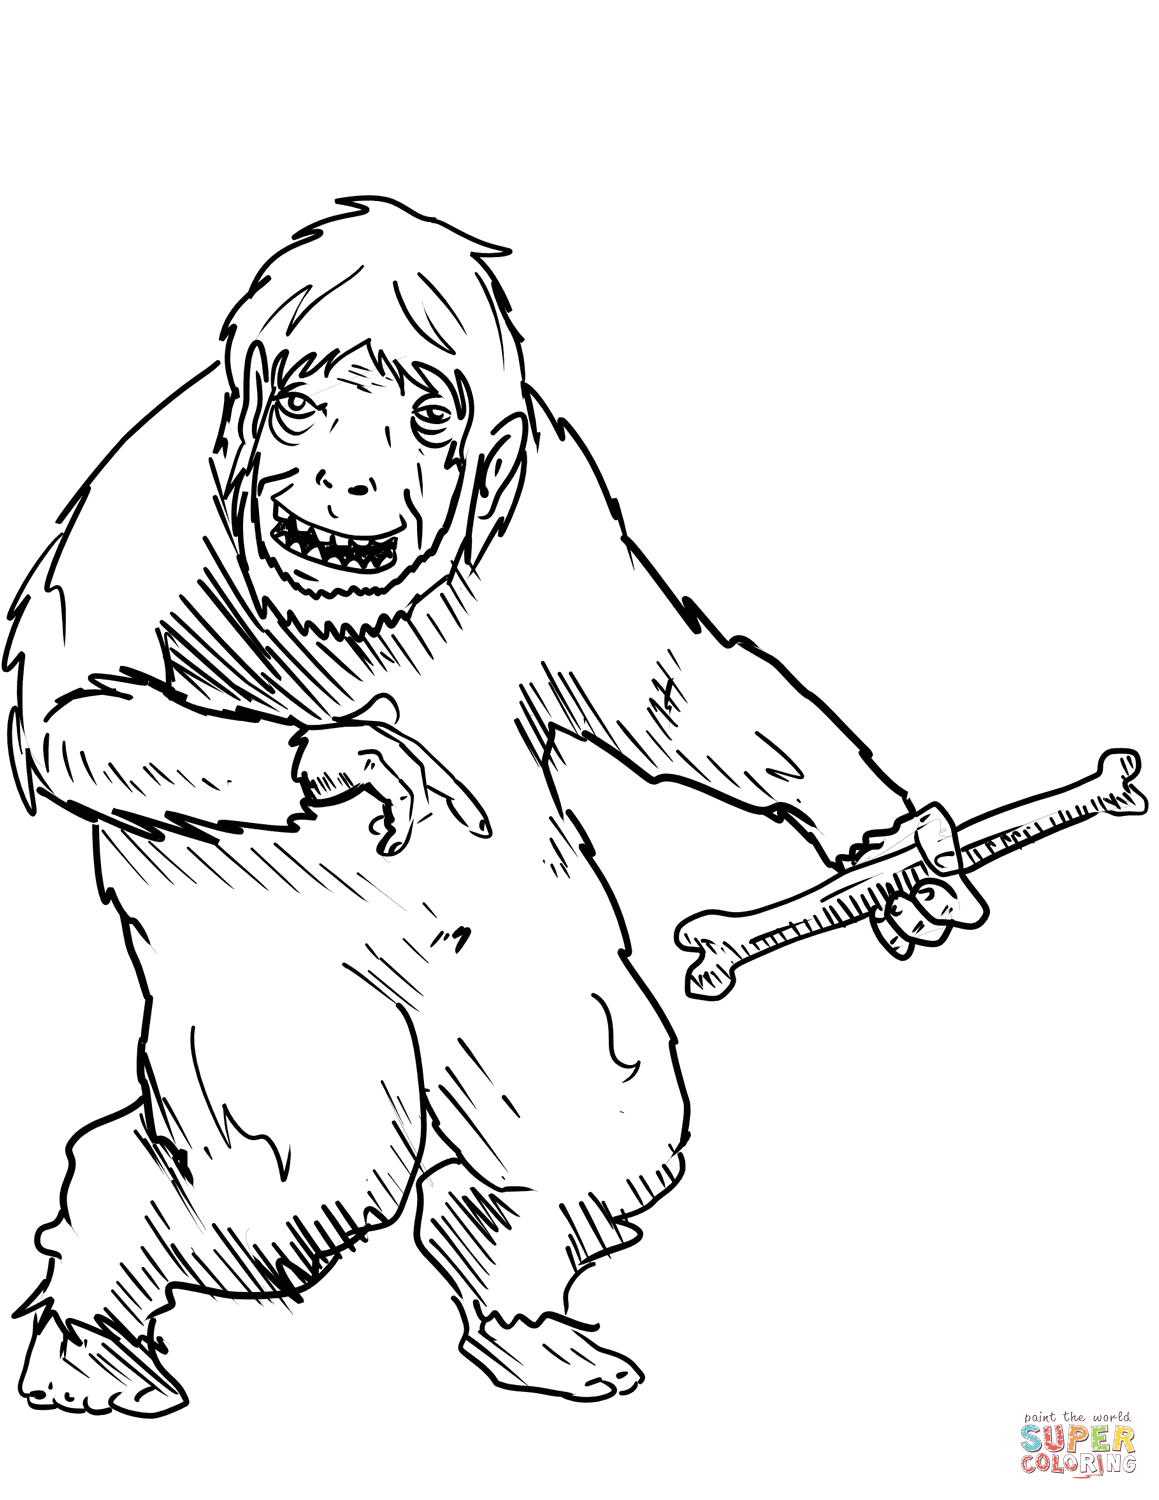 1159x1500 Yeti Amp Bigfoot Coloring Pages Free Coloring Pages